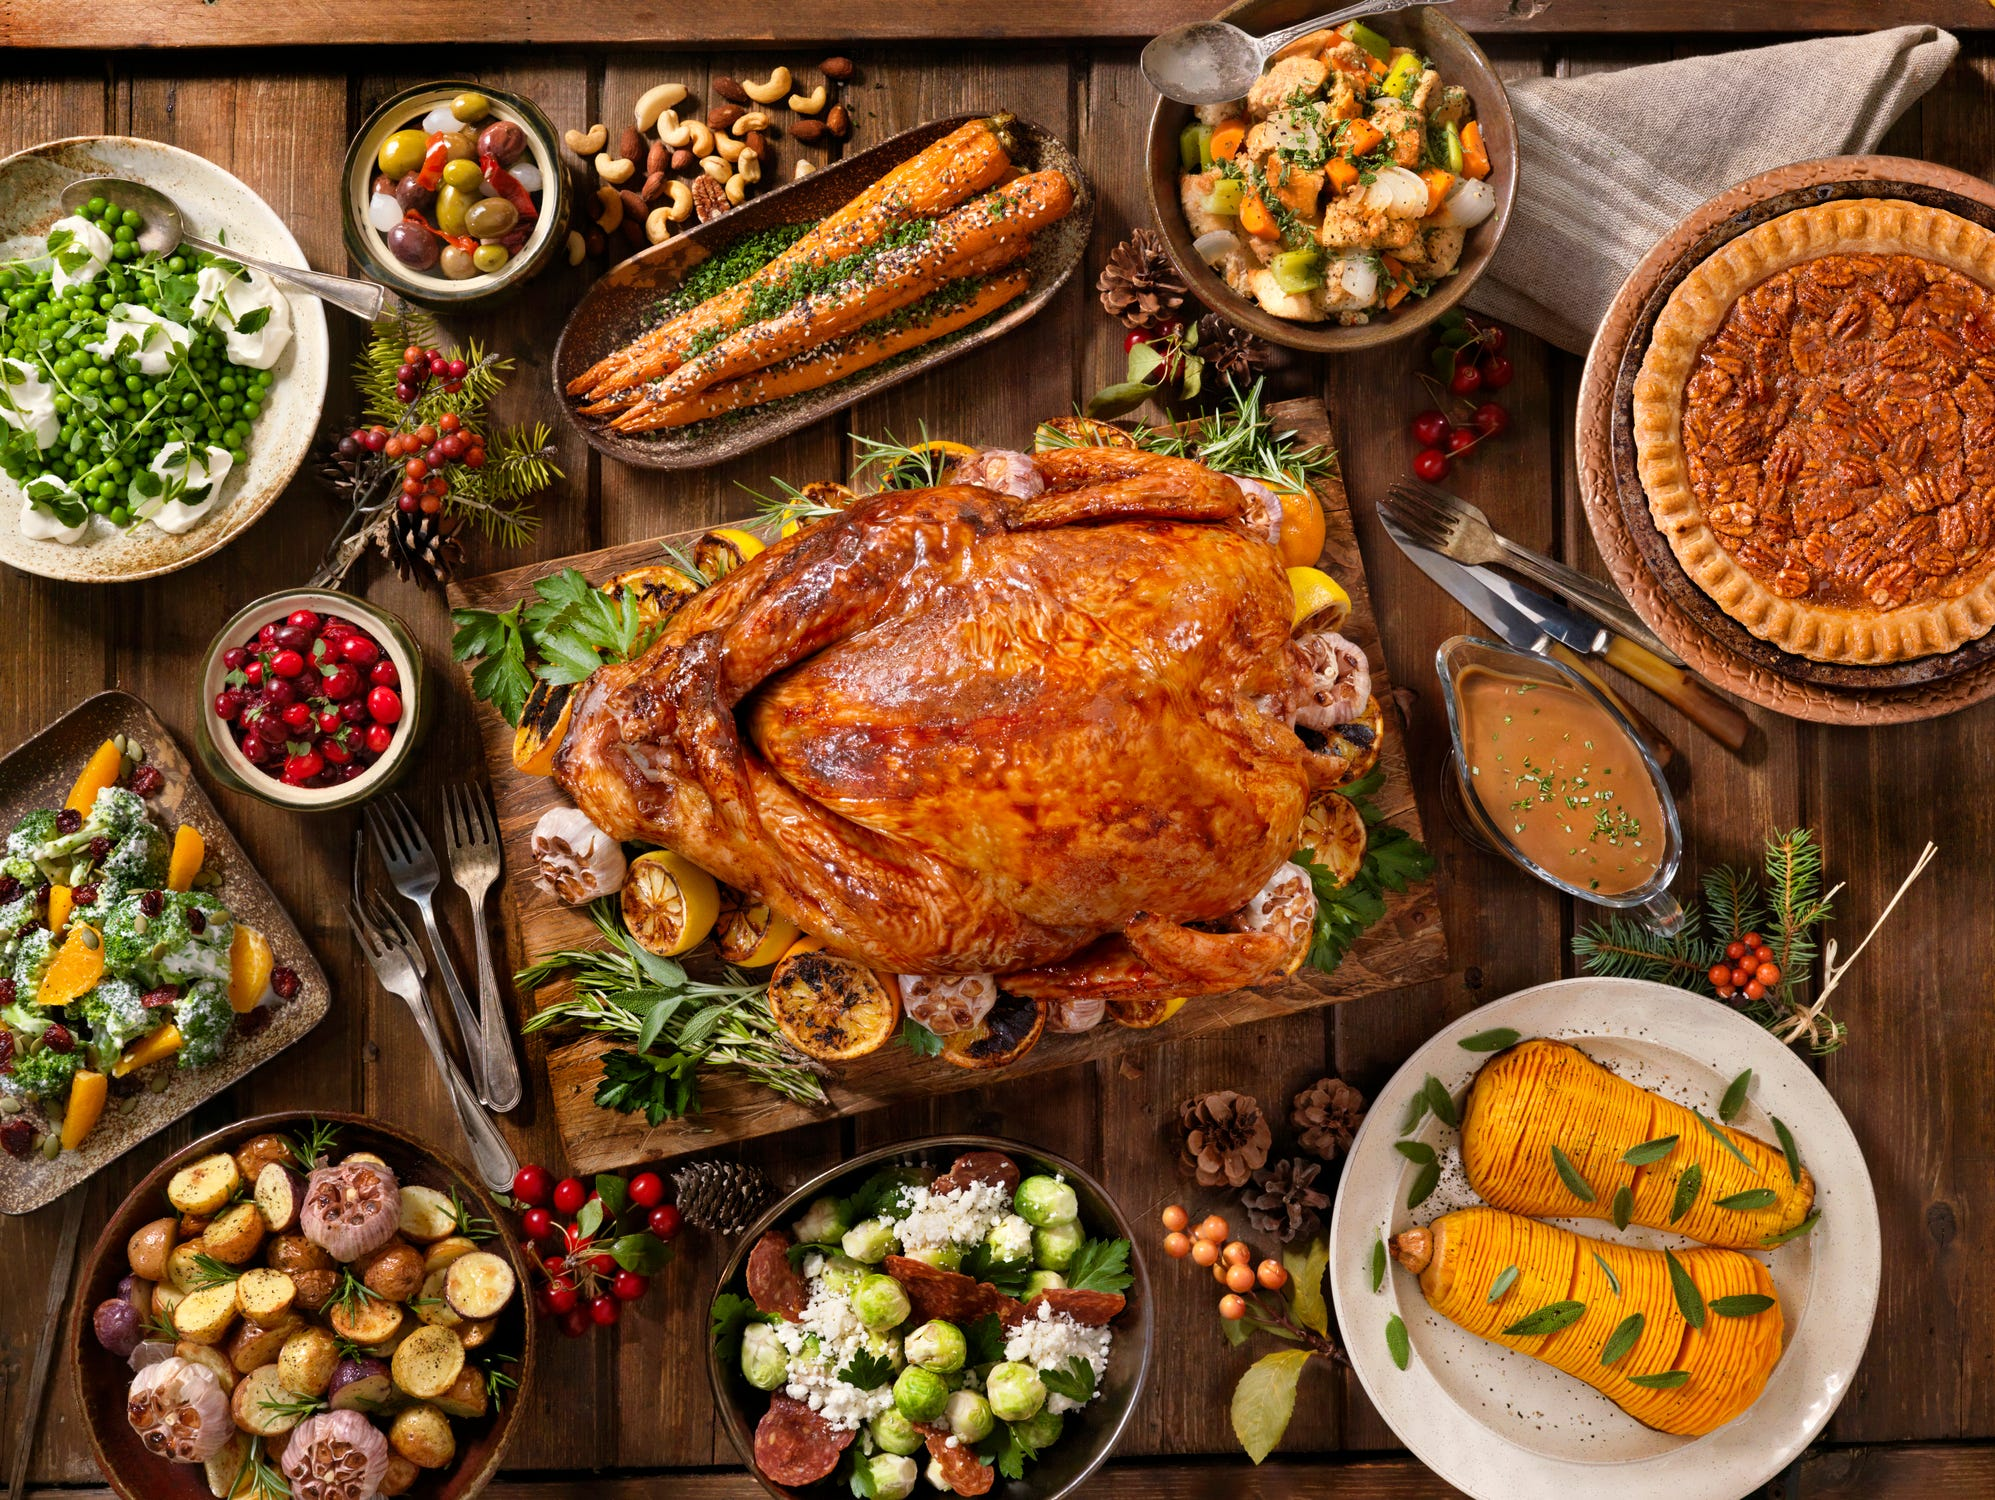 Enter to win a $250 Kroger gift card just in time for Thanksgiving. Entries accepted 11/1-11/19.